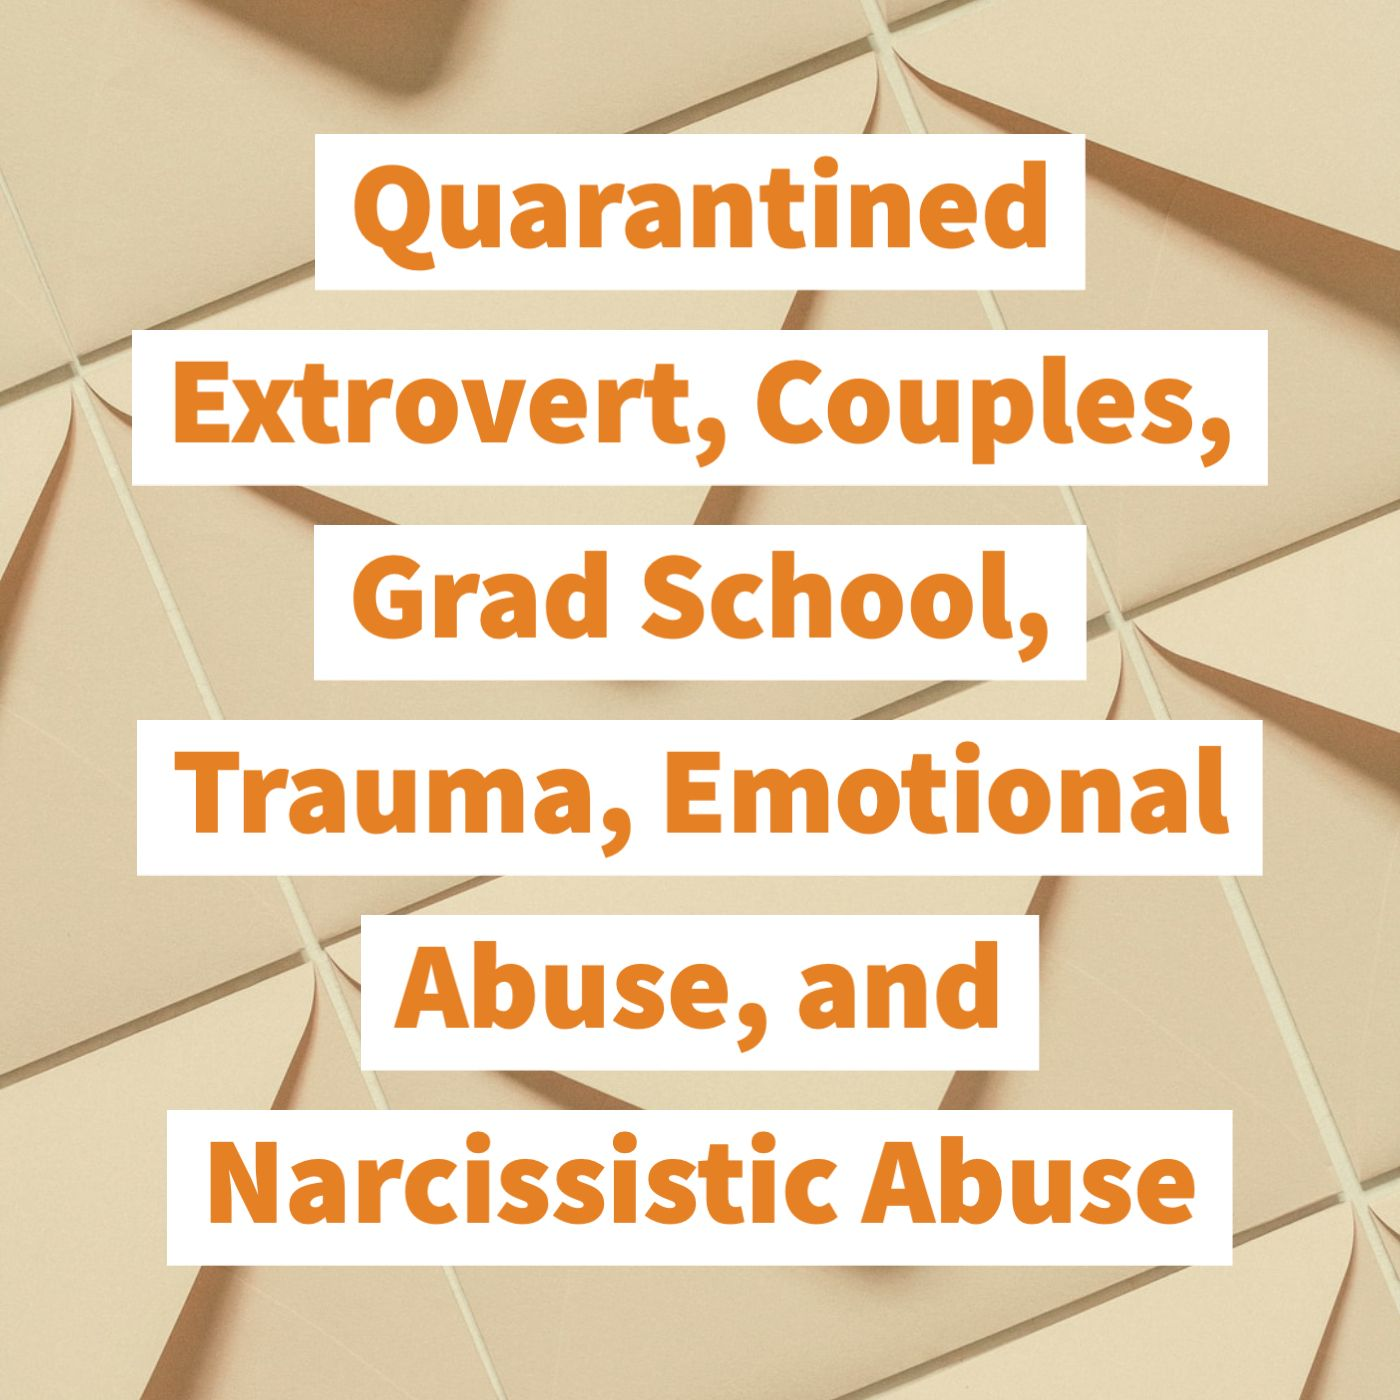 Quarantined Extrovert, Couples, Grad School, Trauma, Emotional Abuse, and Narcissistic Abuse